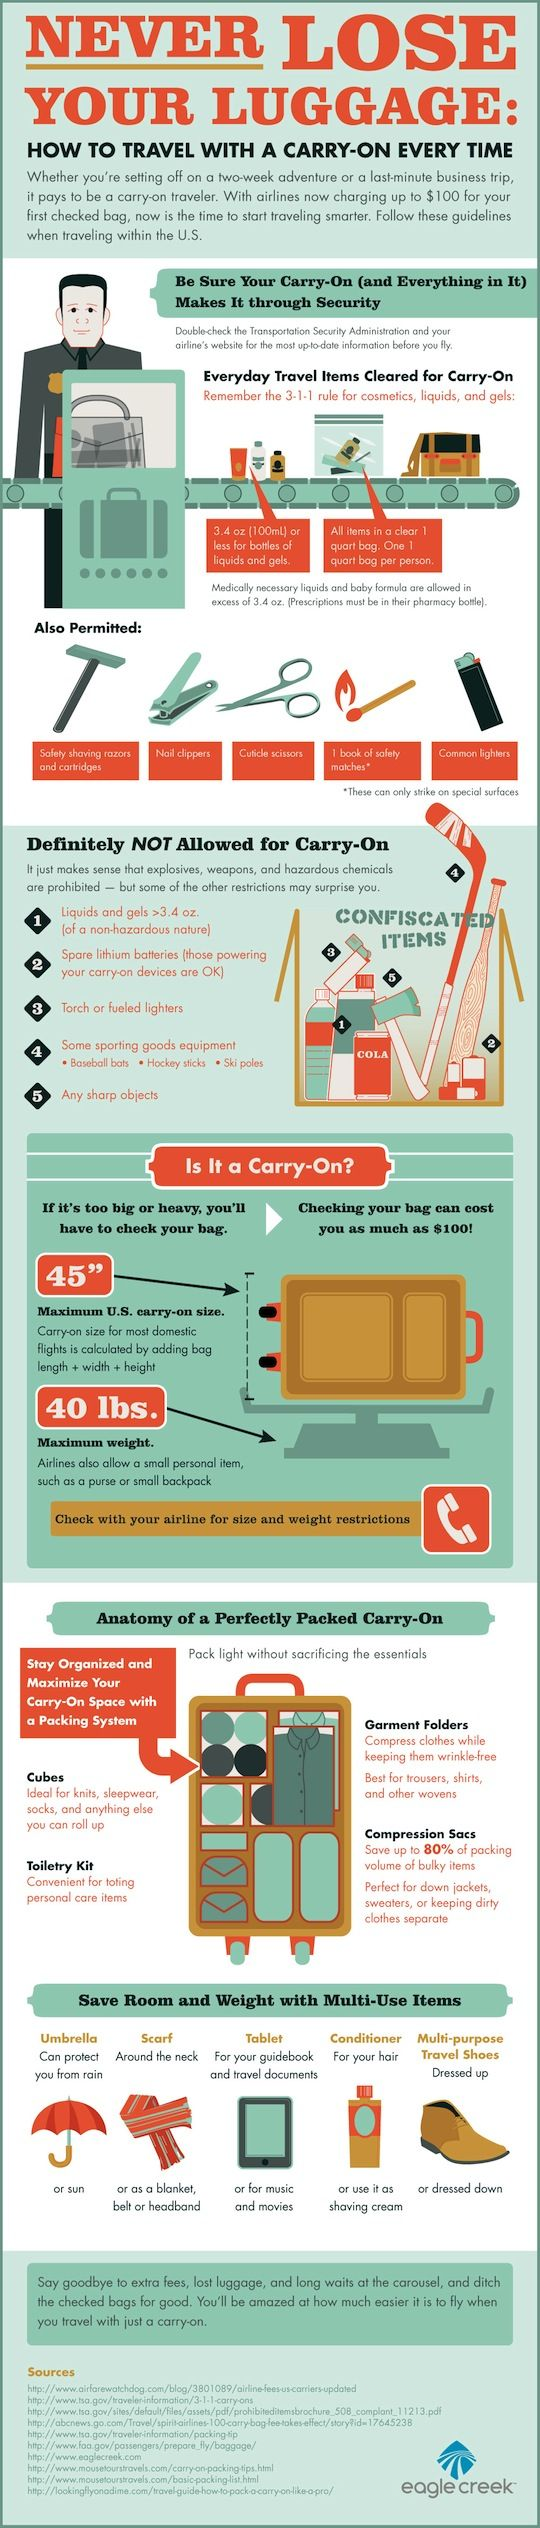 I personally wouldn't spend money on packing cubes, but there are some good tips here. Never Lose Your Luggage: How to Travel With a Carry-On Every Time [Infographic]